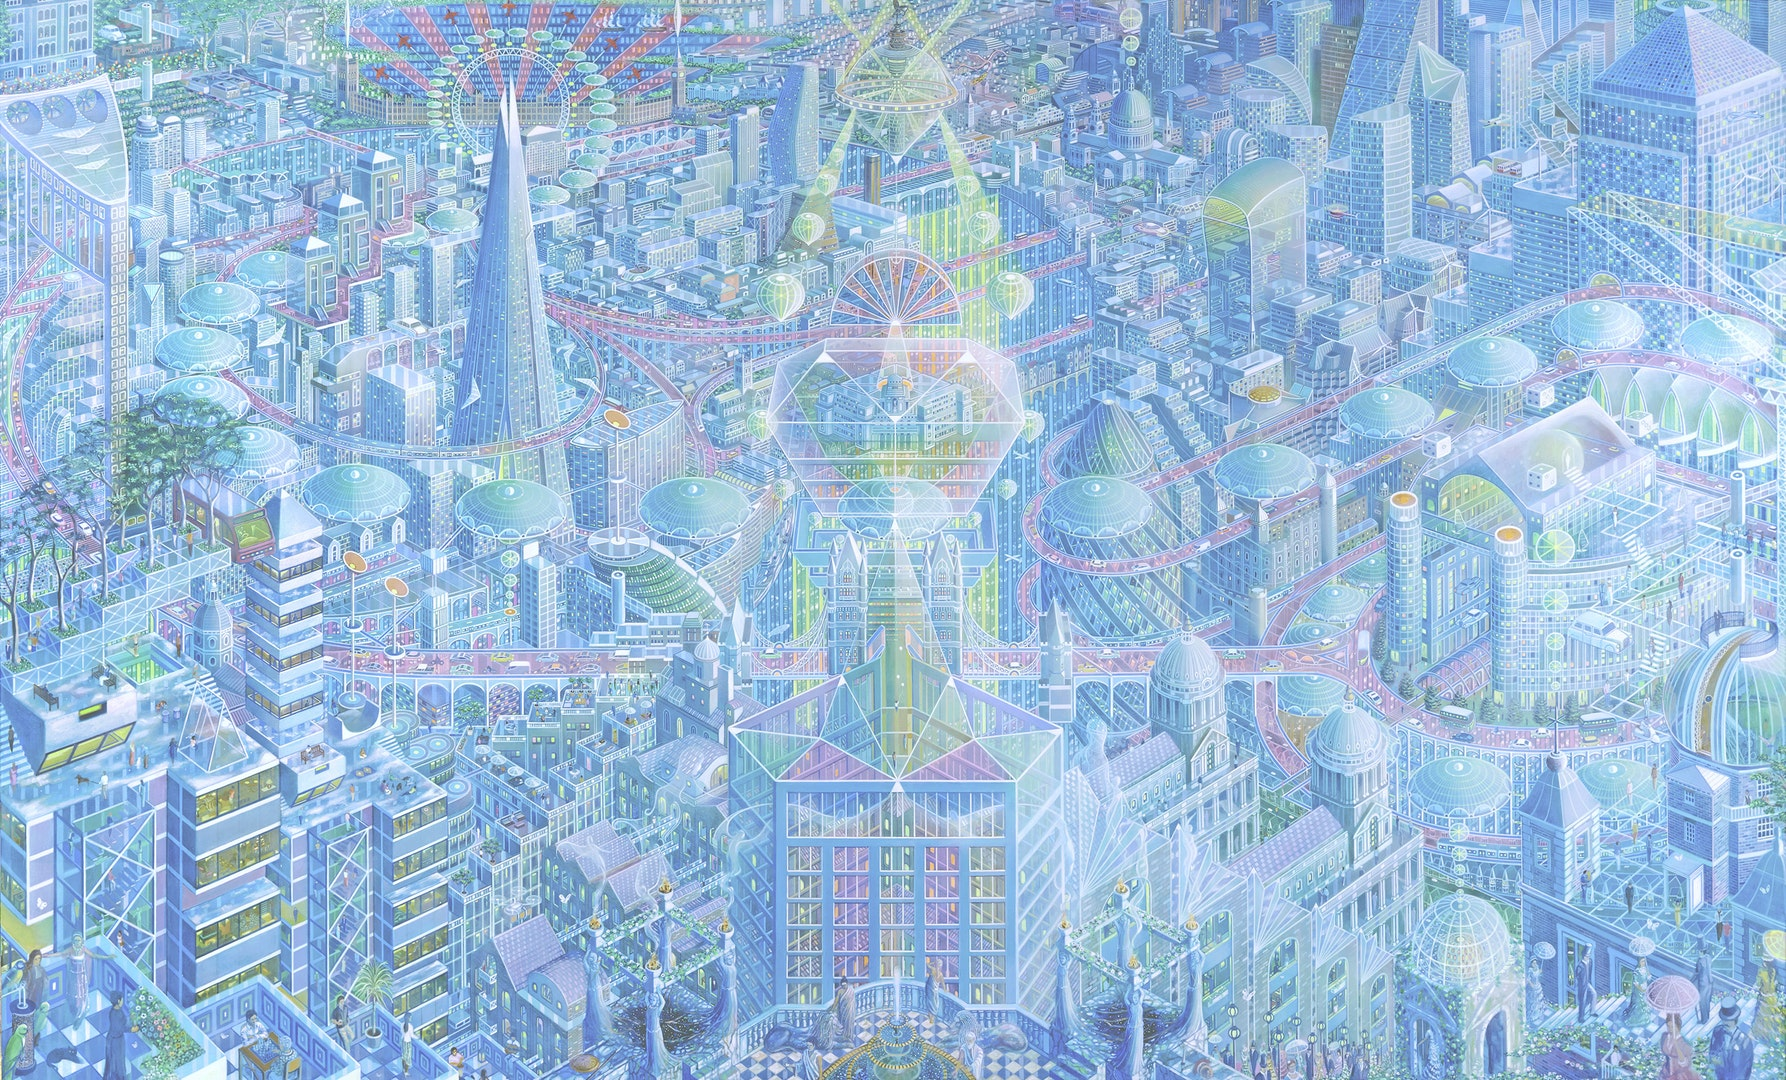 Caio Locke  Metropolis London  Acrylic on canvas, 155 x 255 x 5 cm  http://www.caiolocke.com